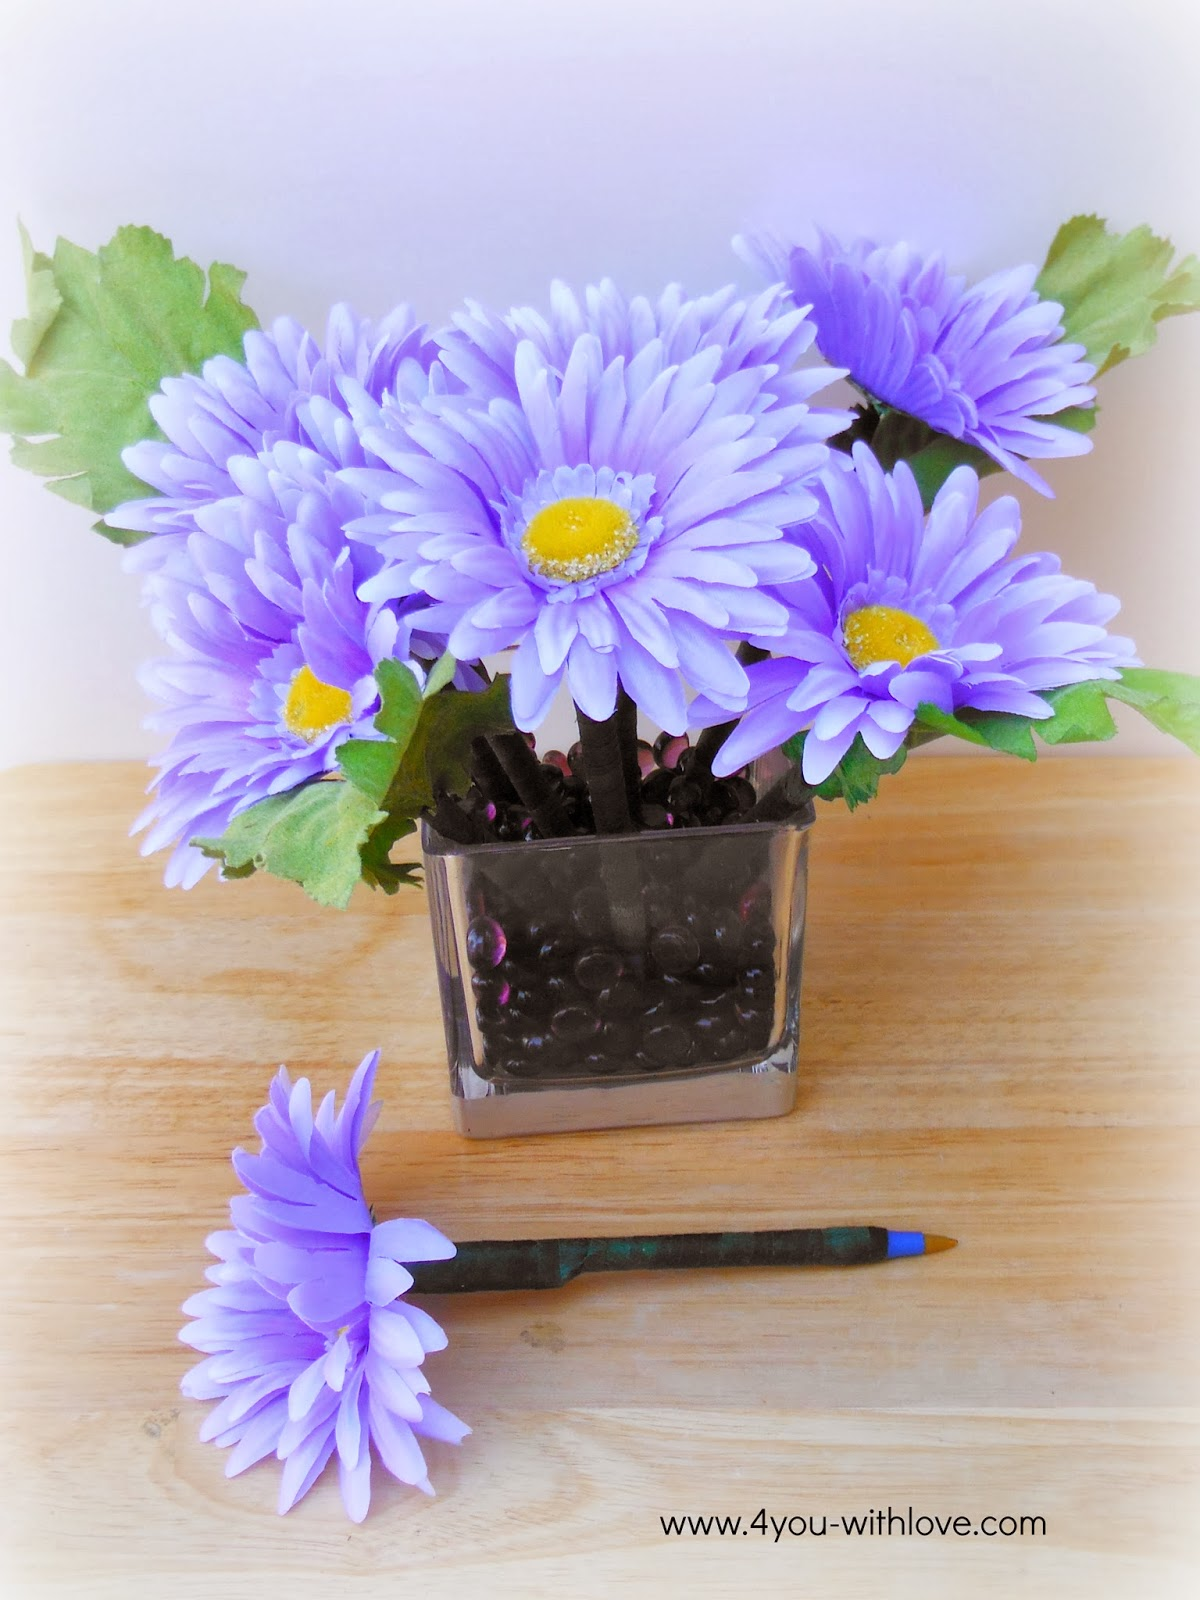 50 Flower Crafts For Spring Do Small Things With Great Love